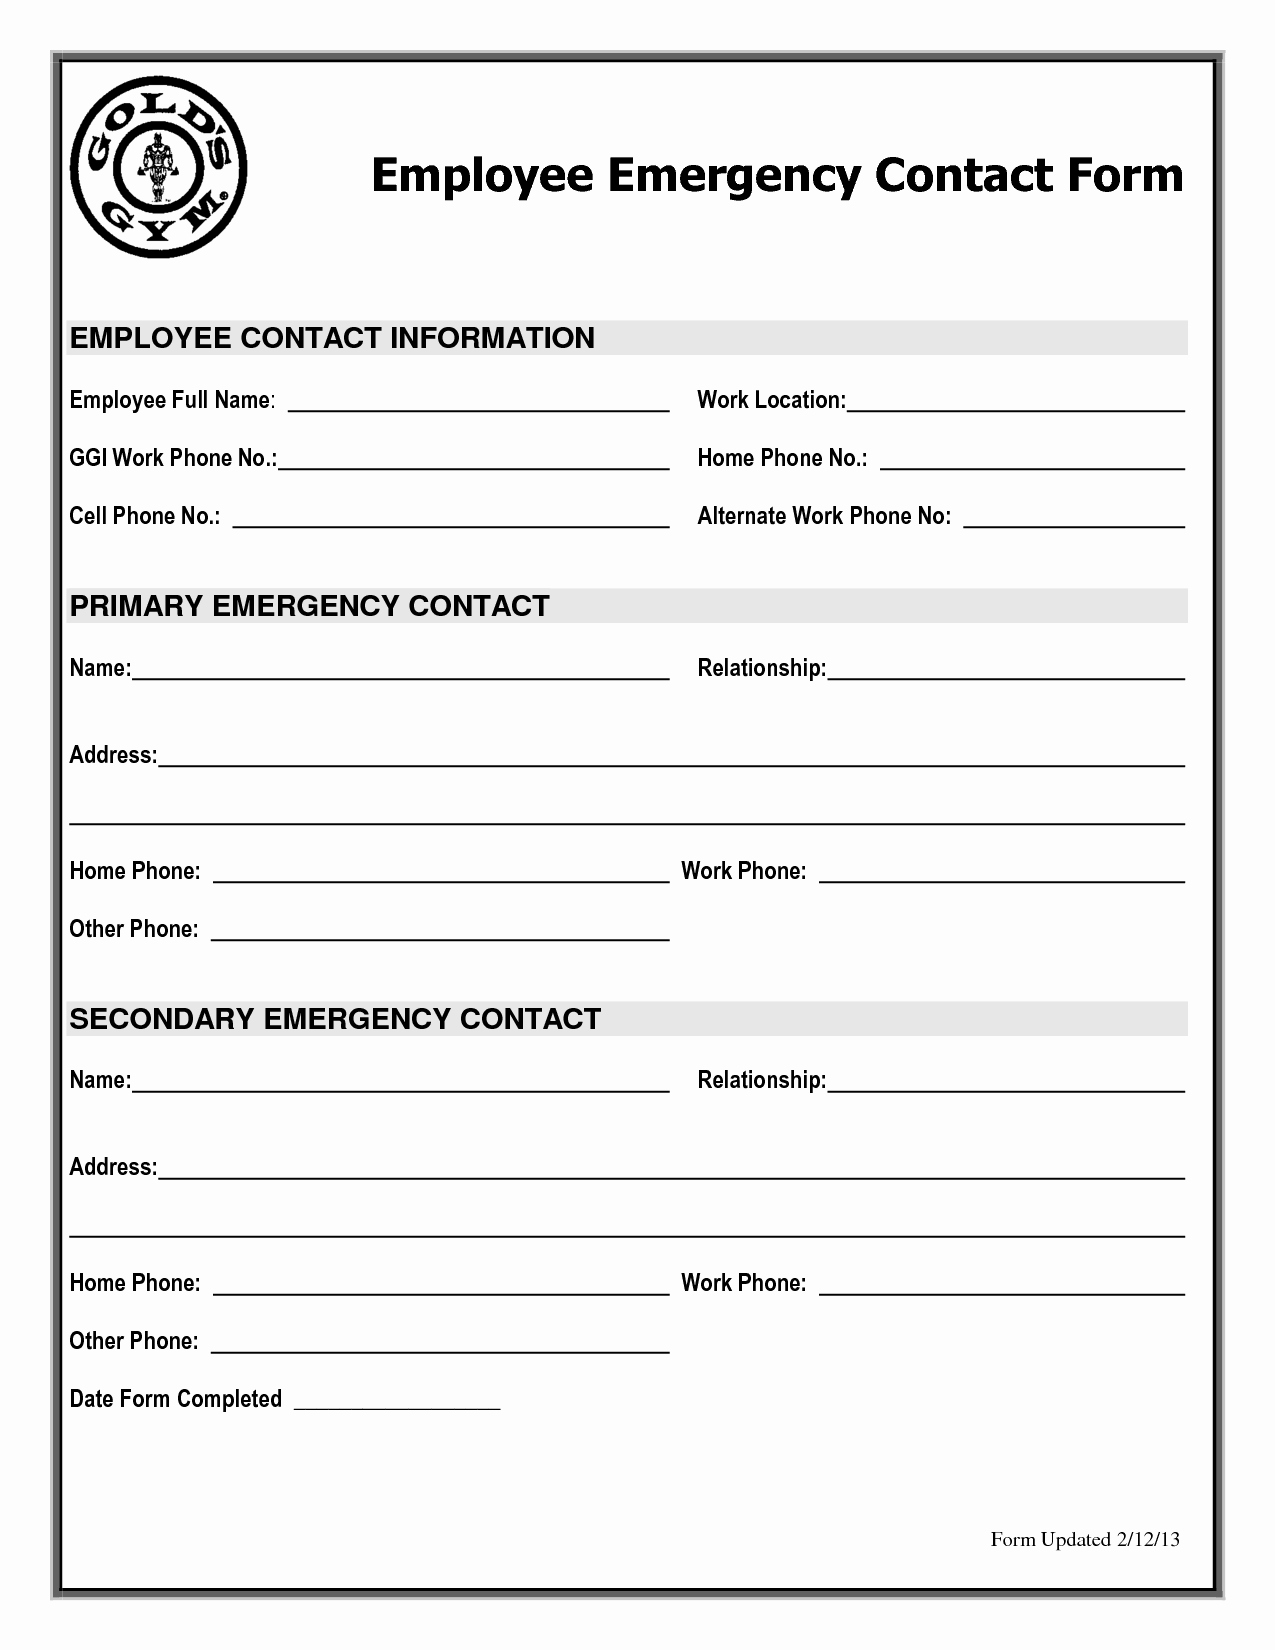 Emergency Contact form Template Free Elegant Emergency Contact form Template Free Template